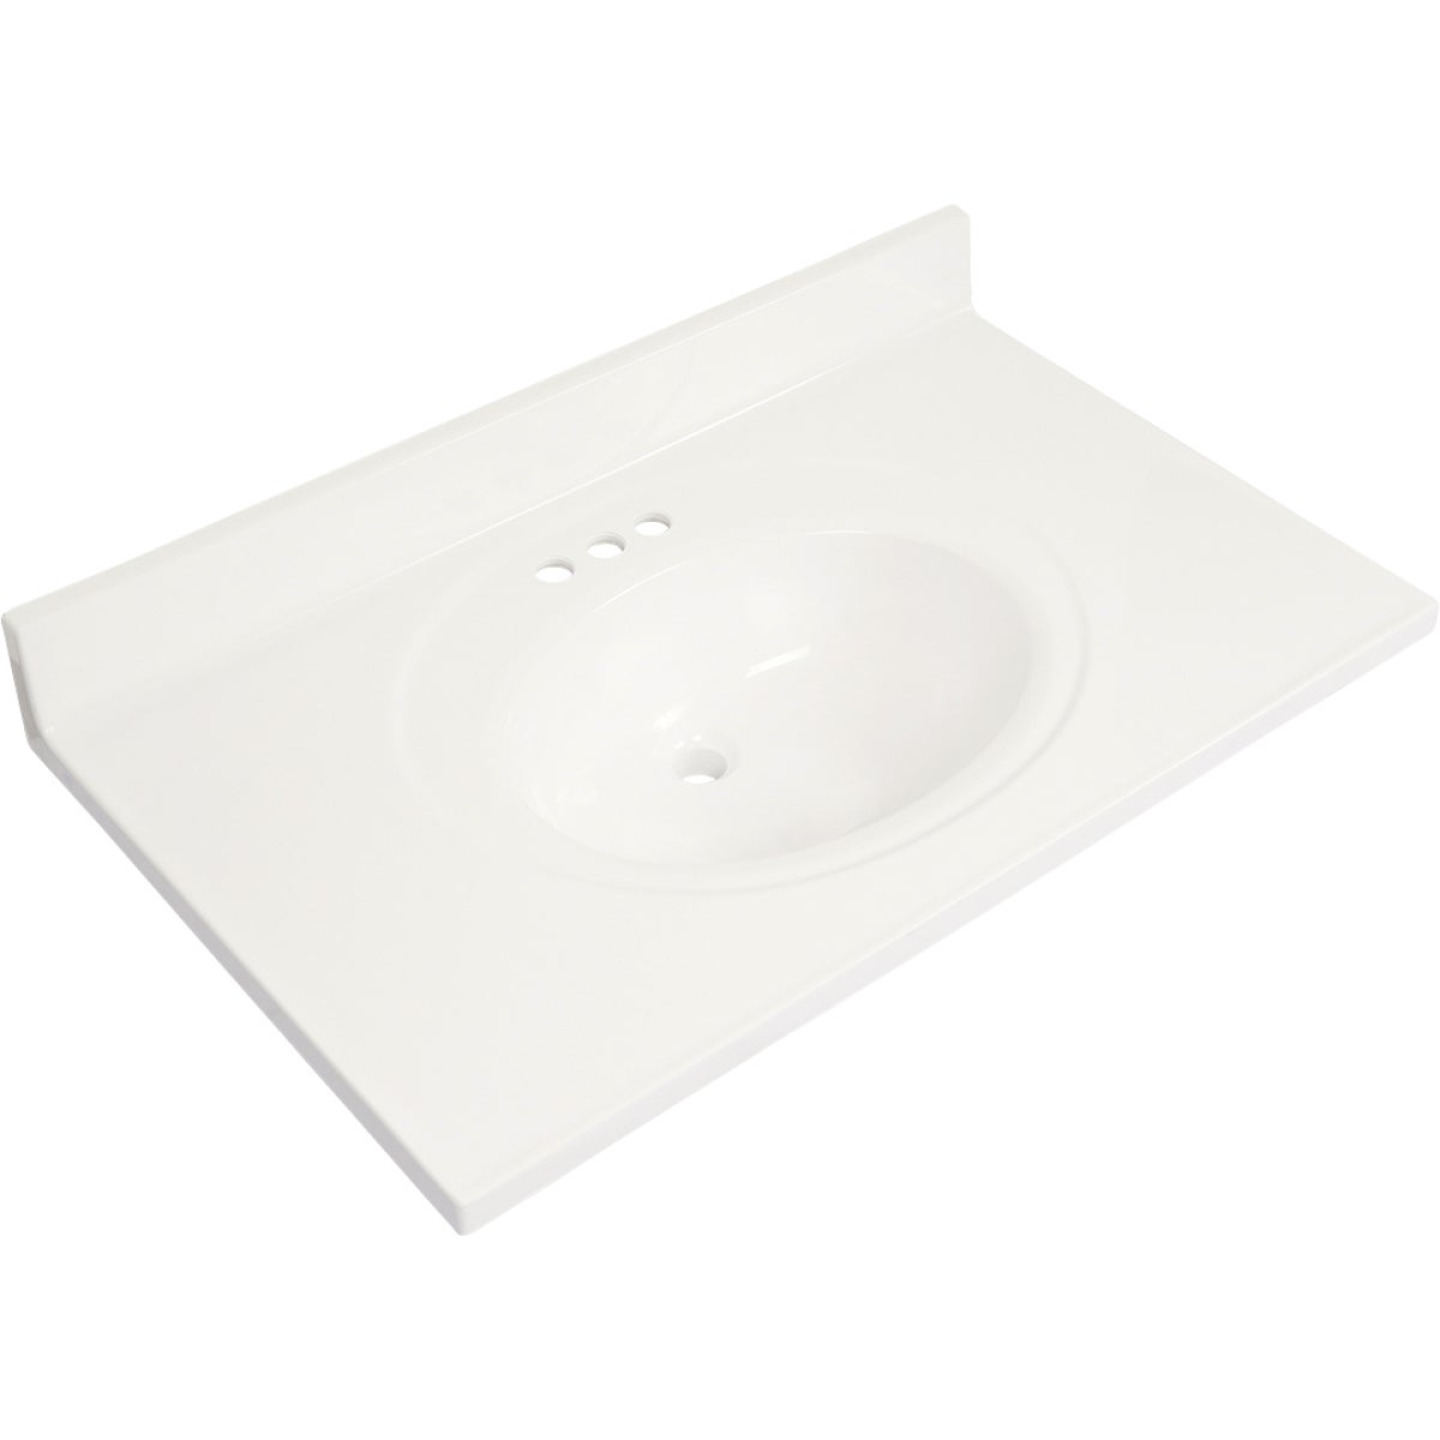 Modular Vanity Tops 37 In. W x 22 In. D Solid White Cultured Marble Flat Edge Vanity Top with Oval Bowl Image 1